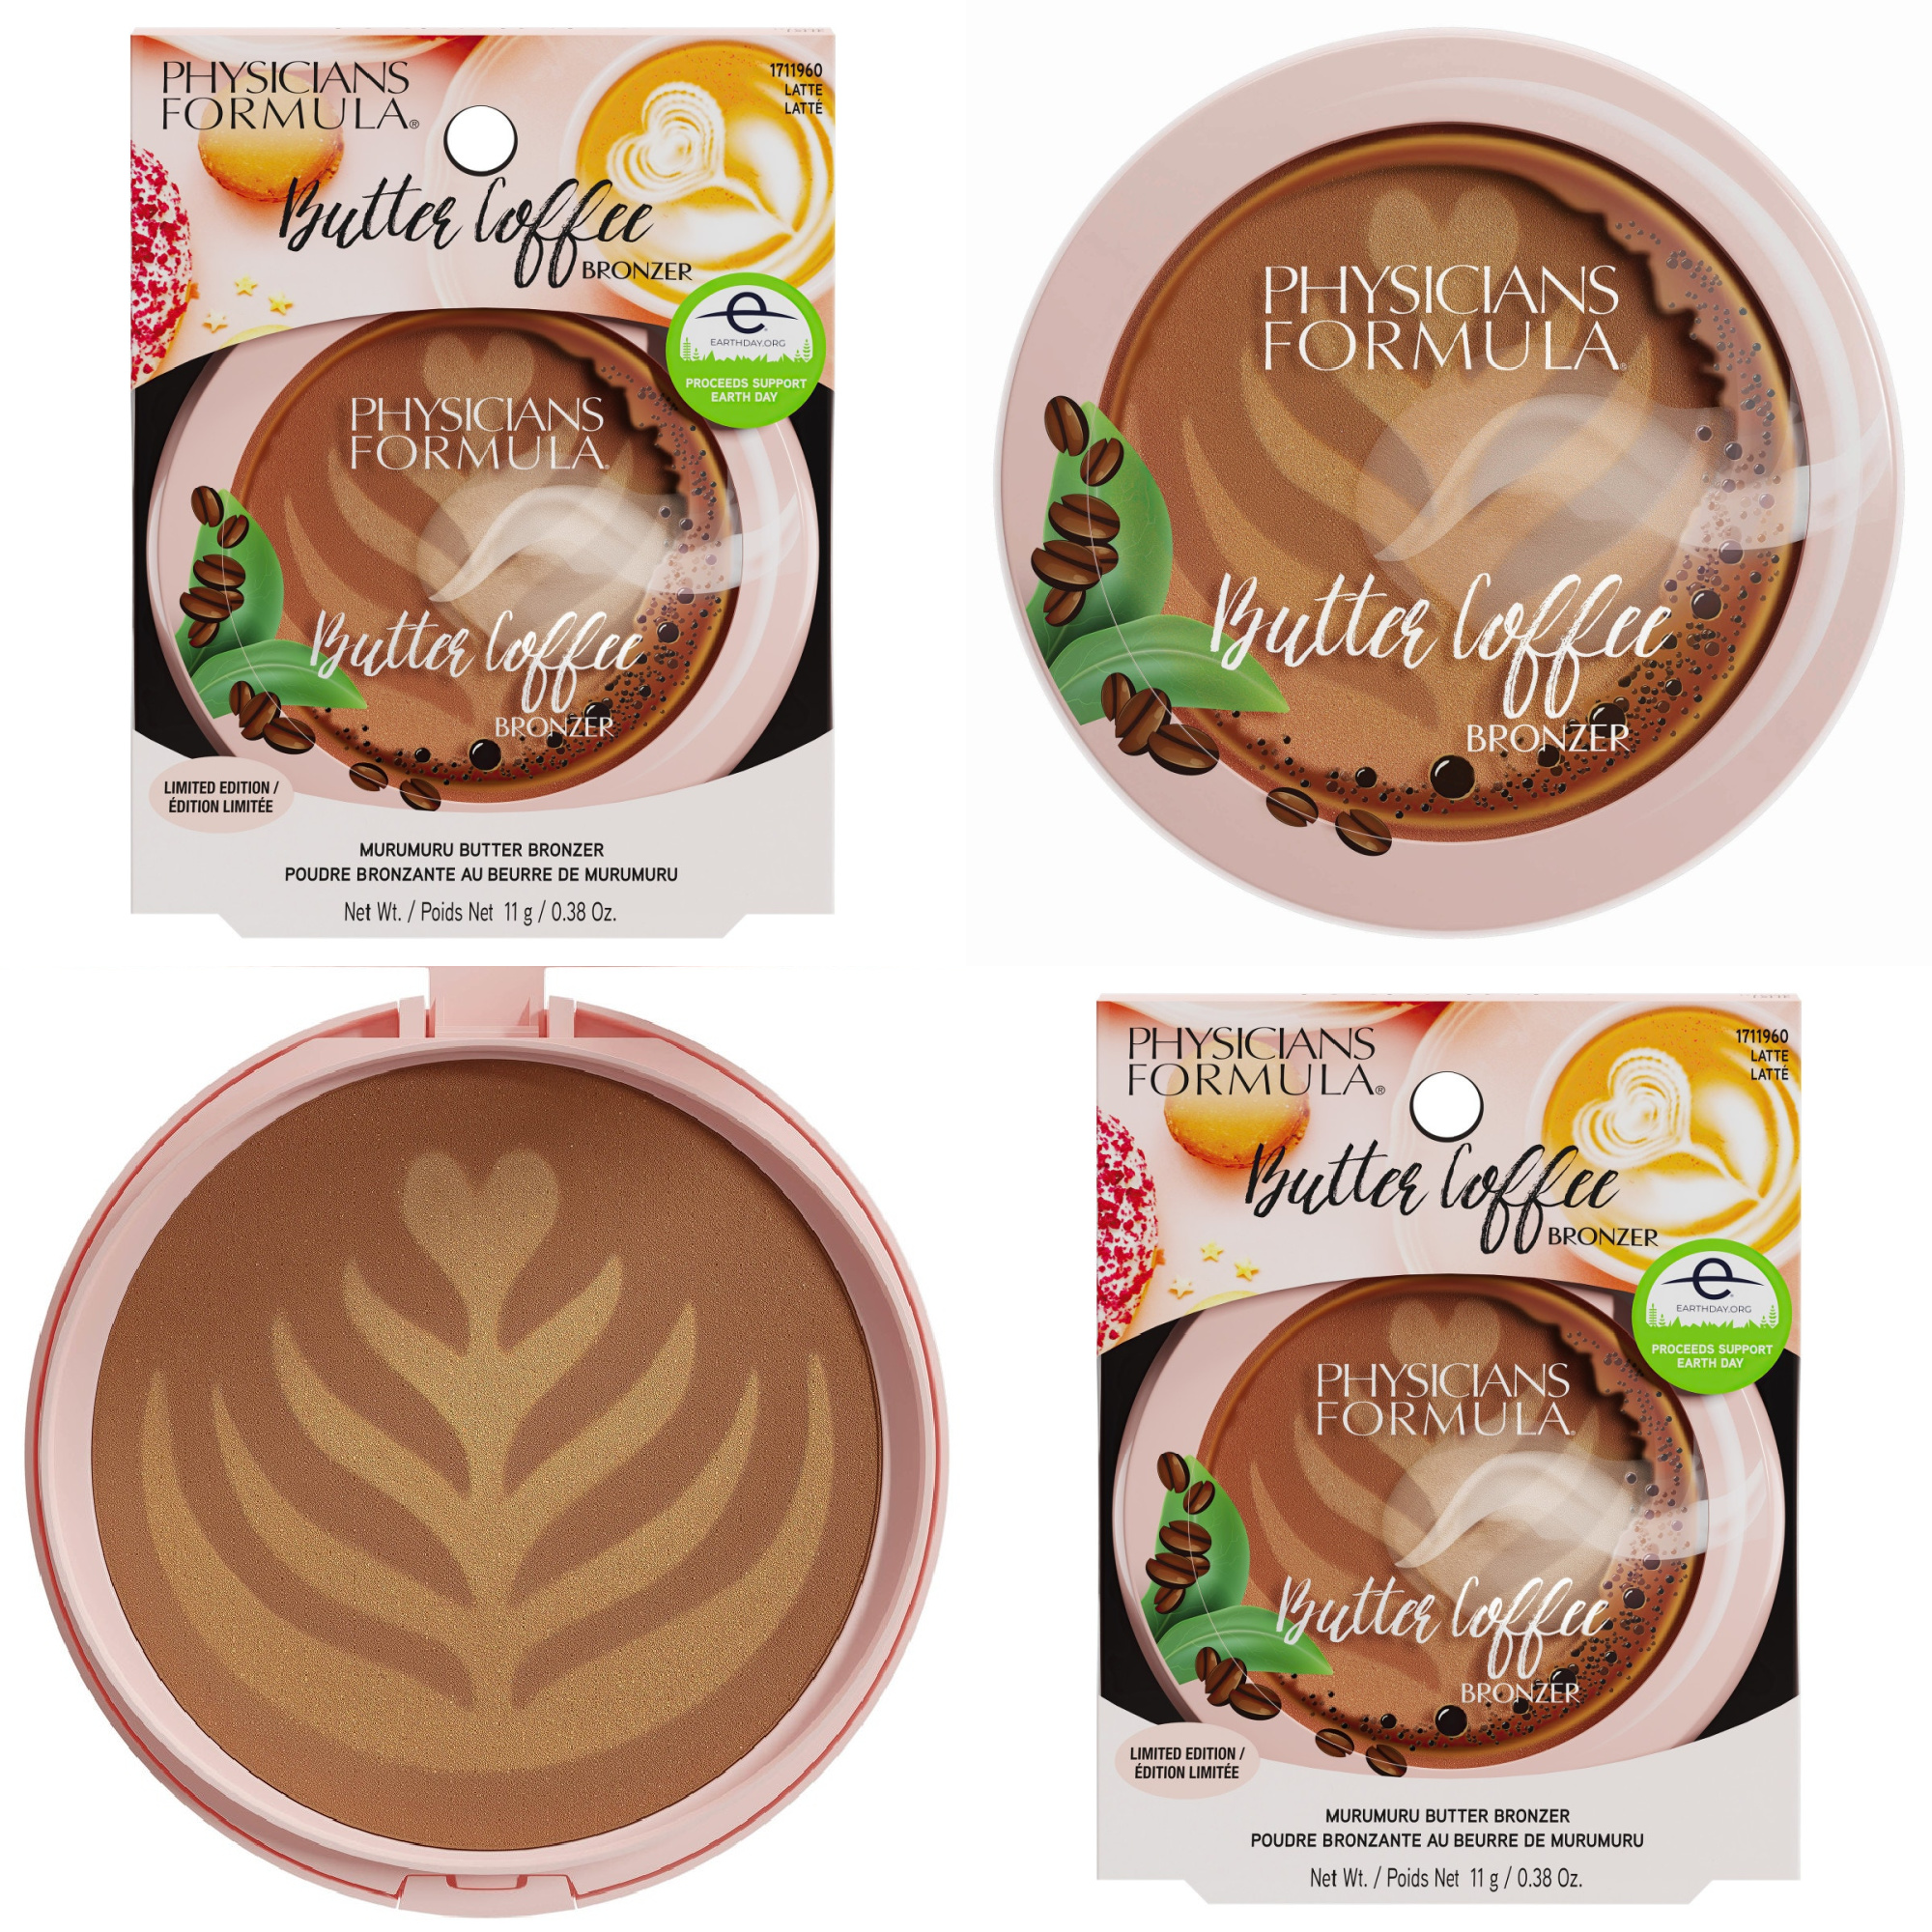 Physicians Formula Butter Cheat Day Collection